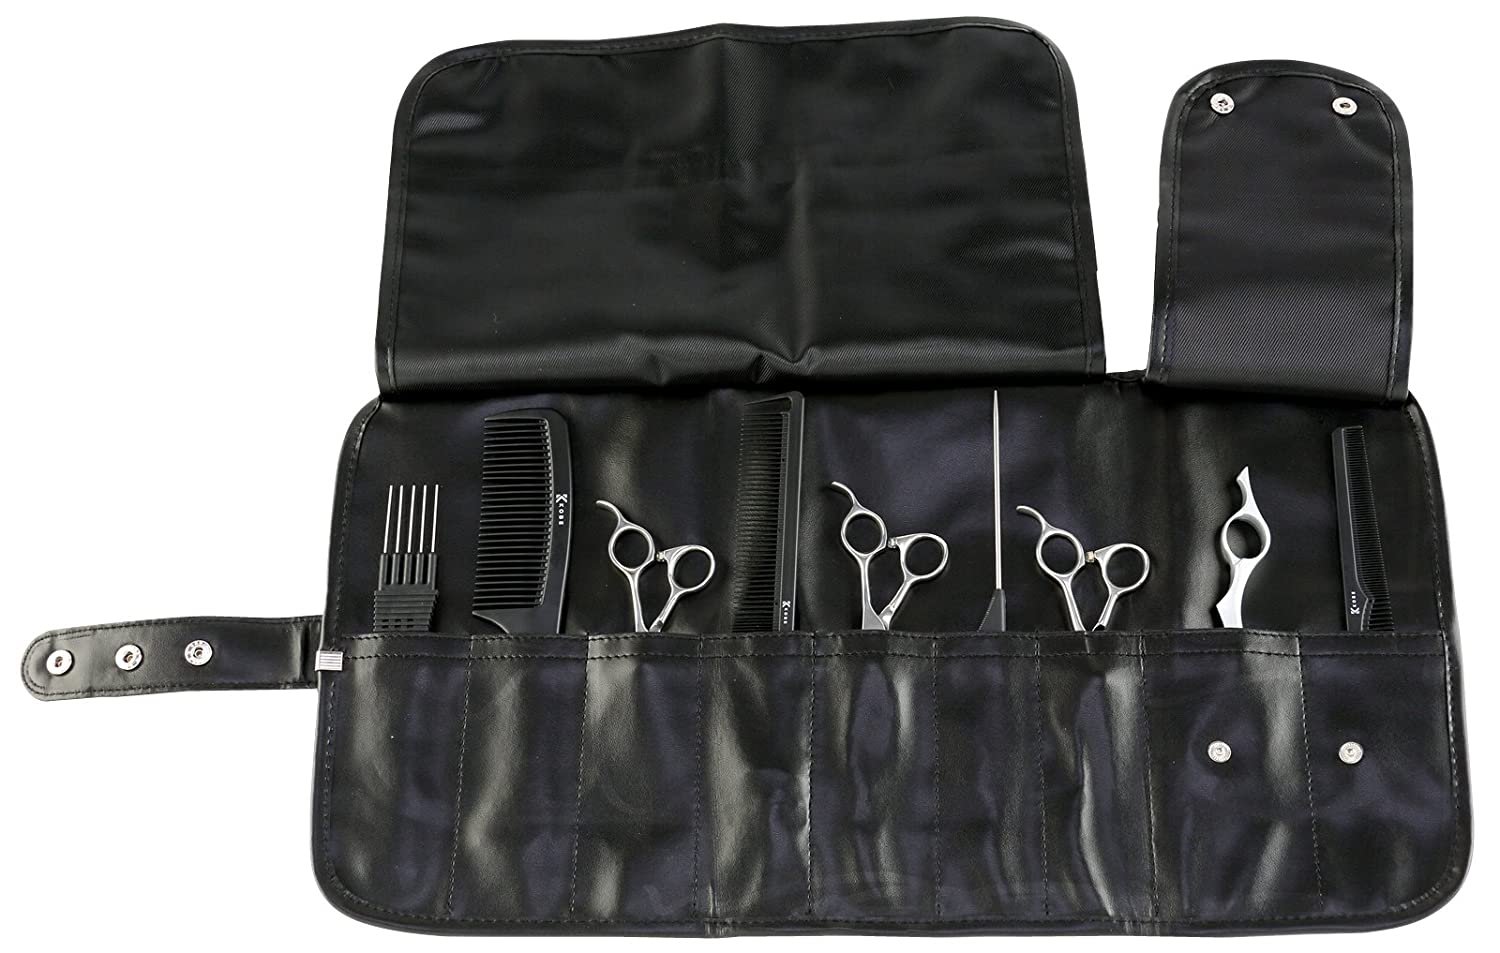 Professional Hairdresser's Black Tool Roll - Hard-Wearing Leatherette CoolBlades